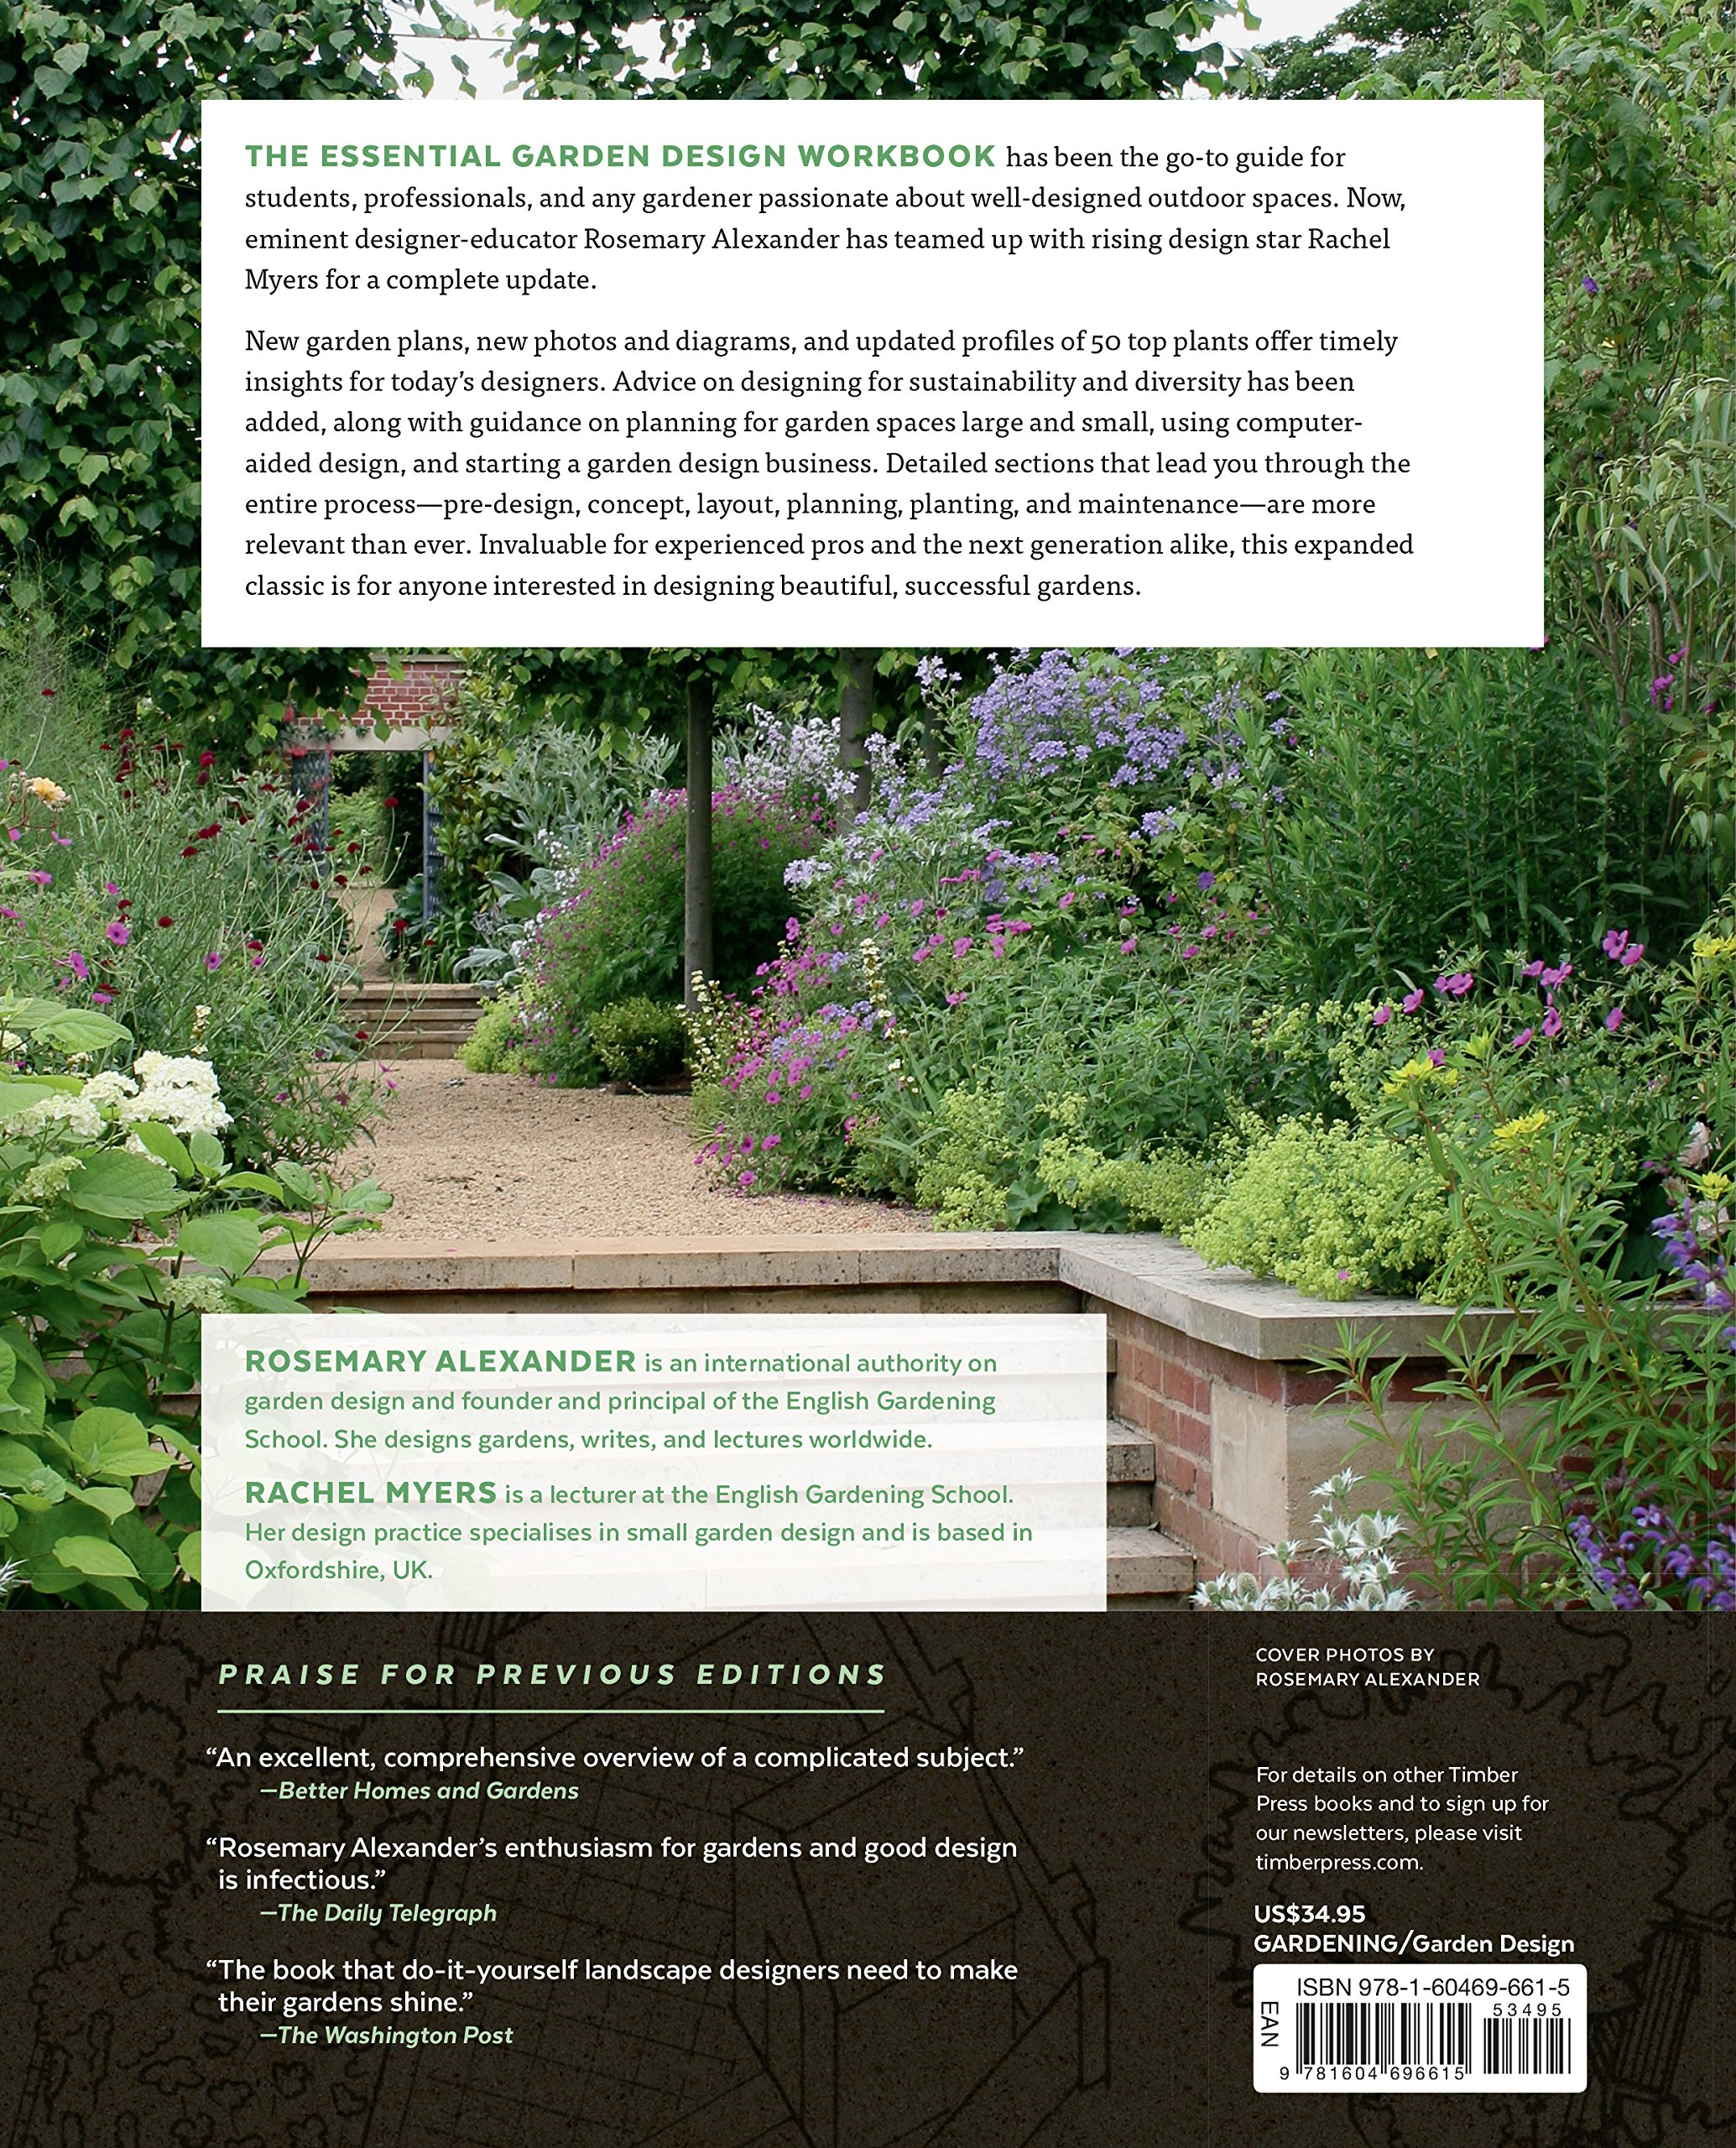 The Essential Garden Design Workbook Completely Revised And Expanded Amazon Com Br